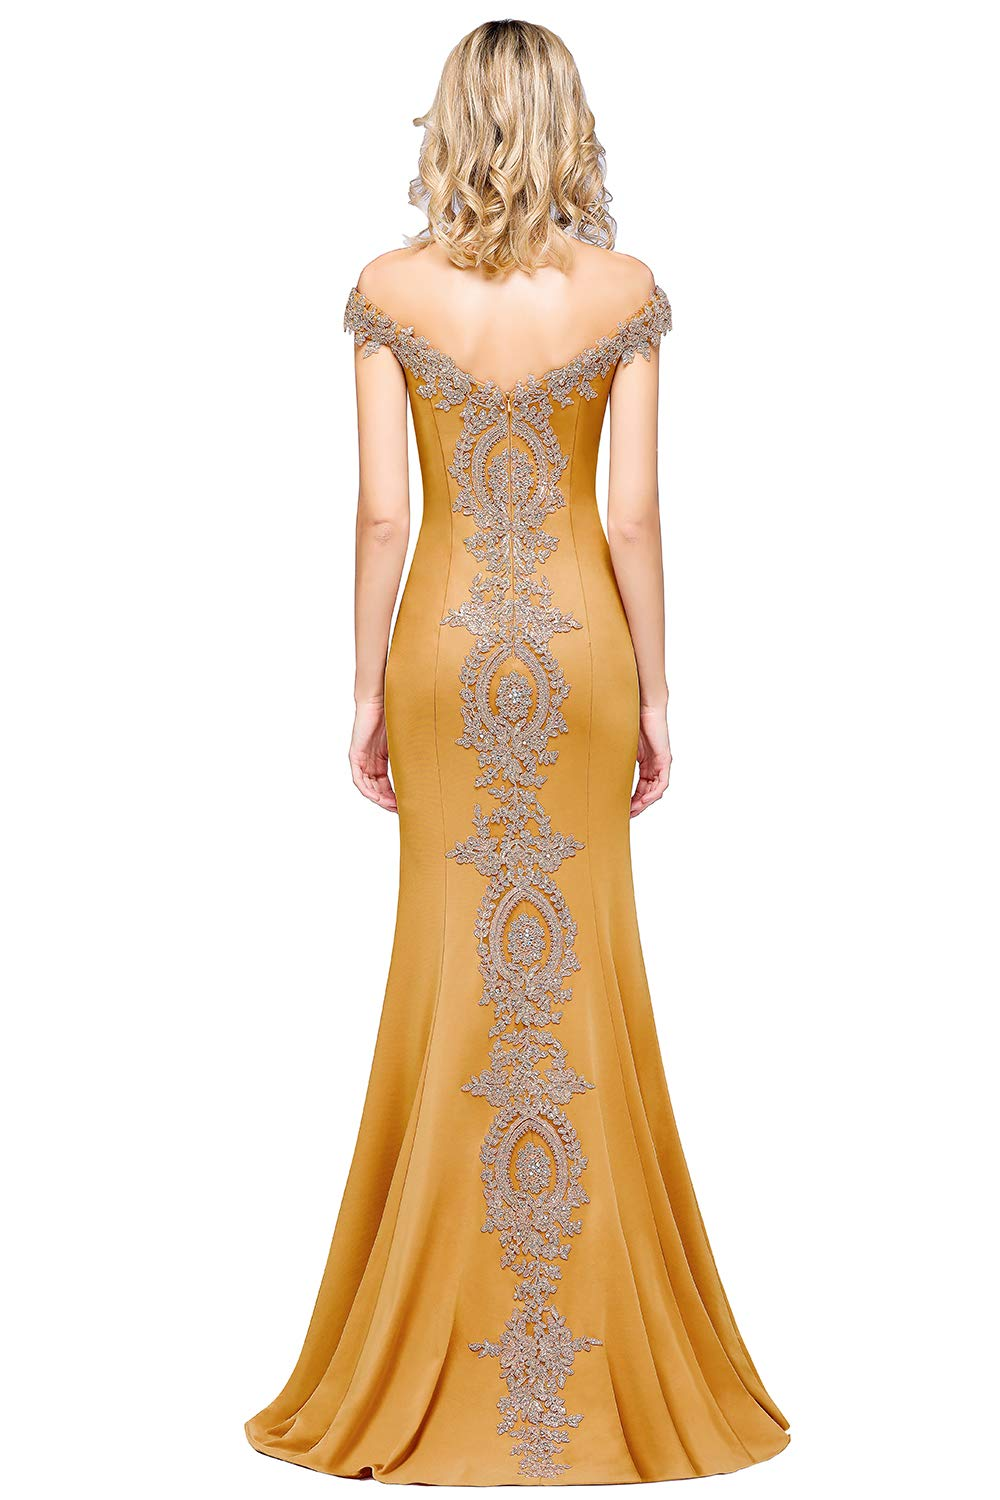 5046d11f982e Home/Brands/MisShow/Women's Gold Lace Applique Mermaid Bridesmaid Dress  Wedding Party Gowns,Yellow,8. ; 